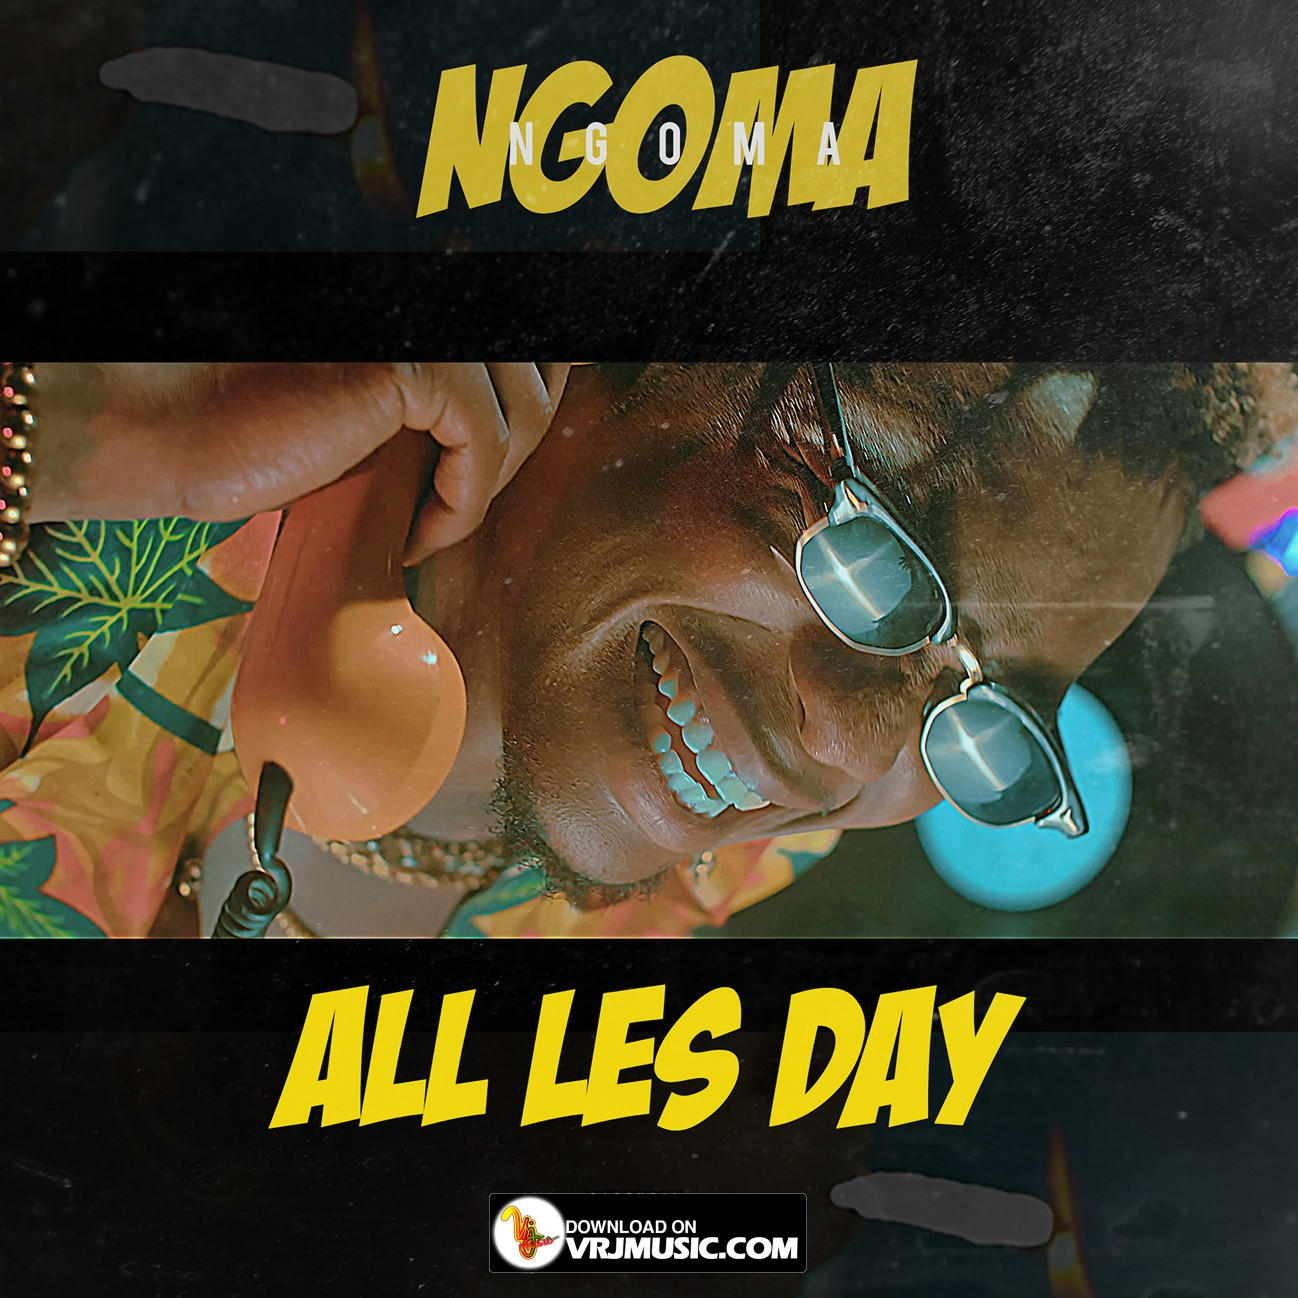 All Les Day